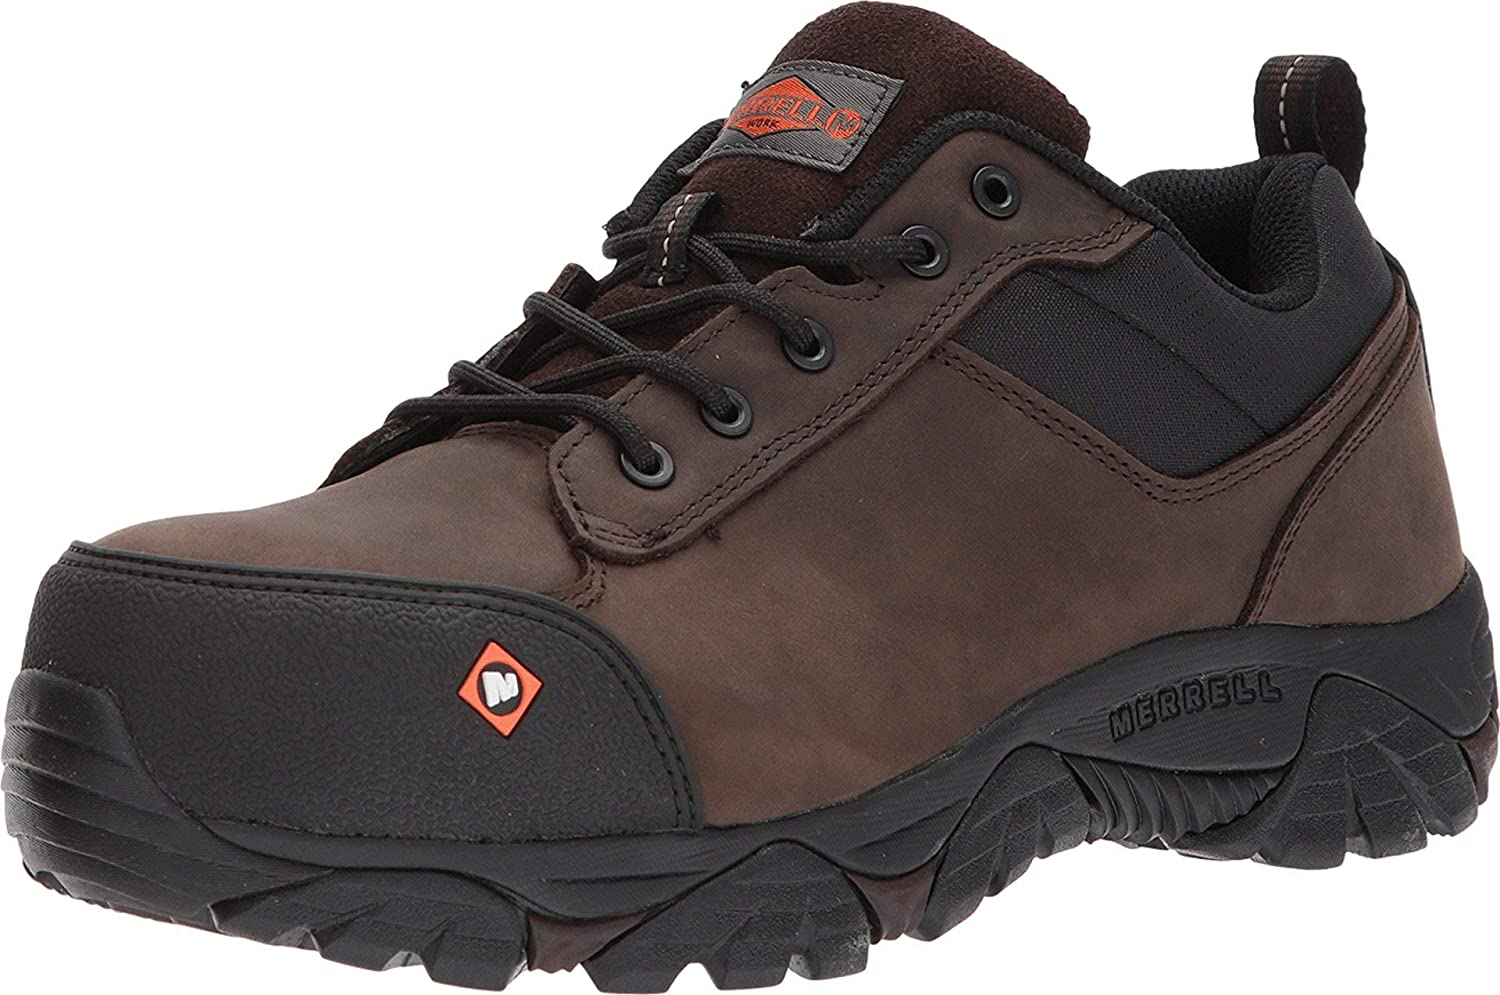 Merrell Work Moab Rover Lace CT